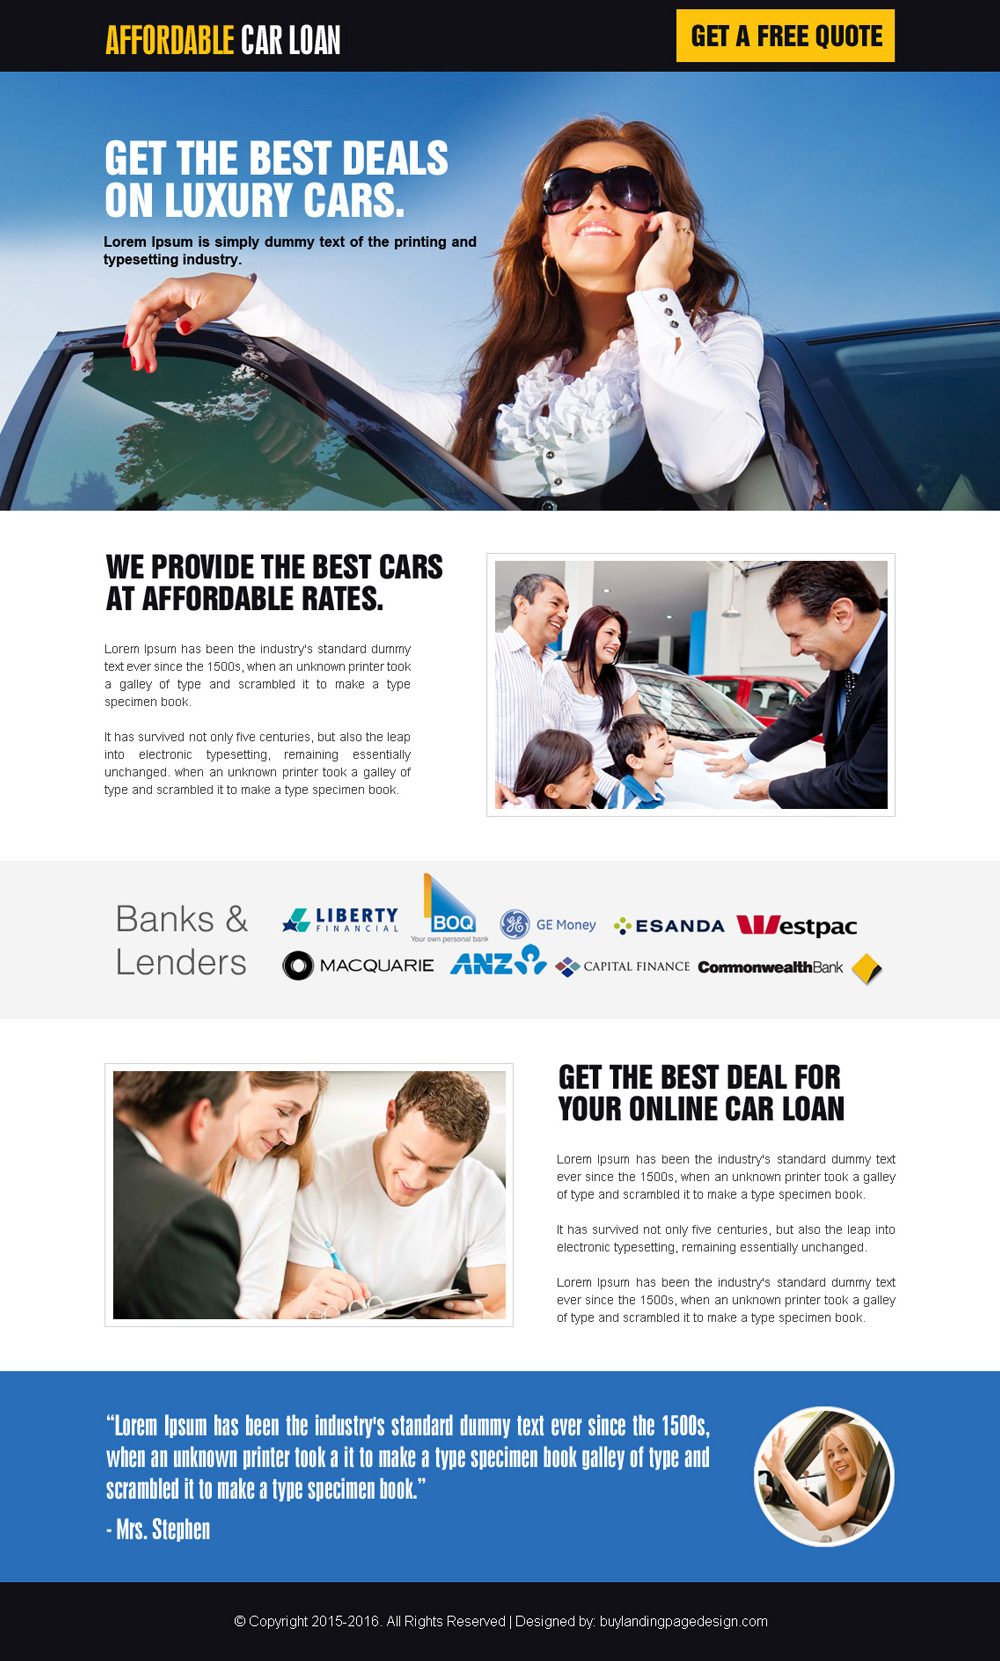 minimal-car-loan-free-quote-landing-page-design-templates-003